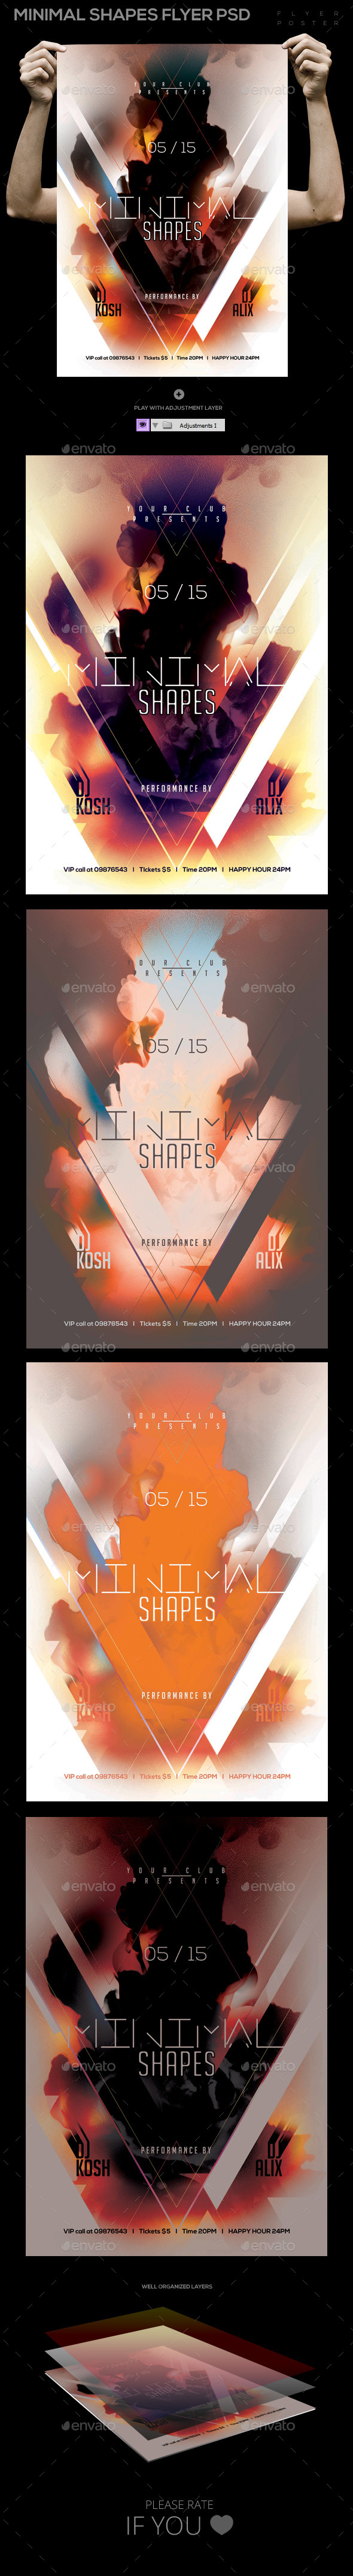 GraphicRiver Minimal Shapes Template PSD Flyer Poster 11476878